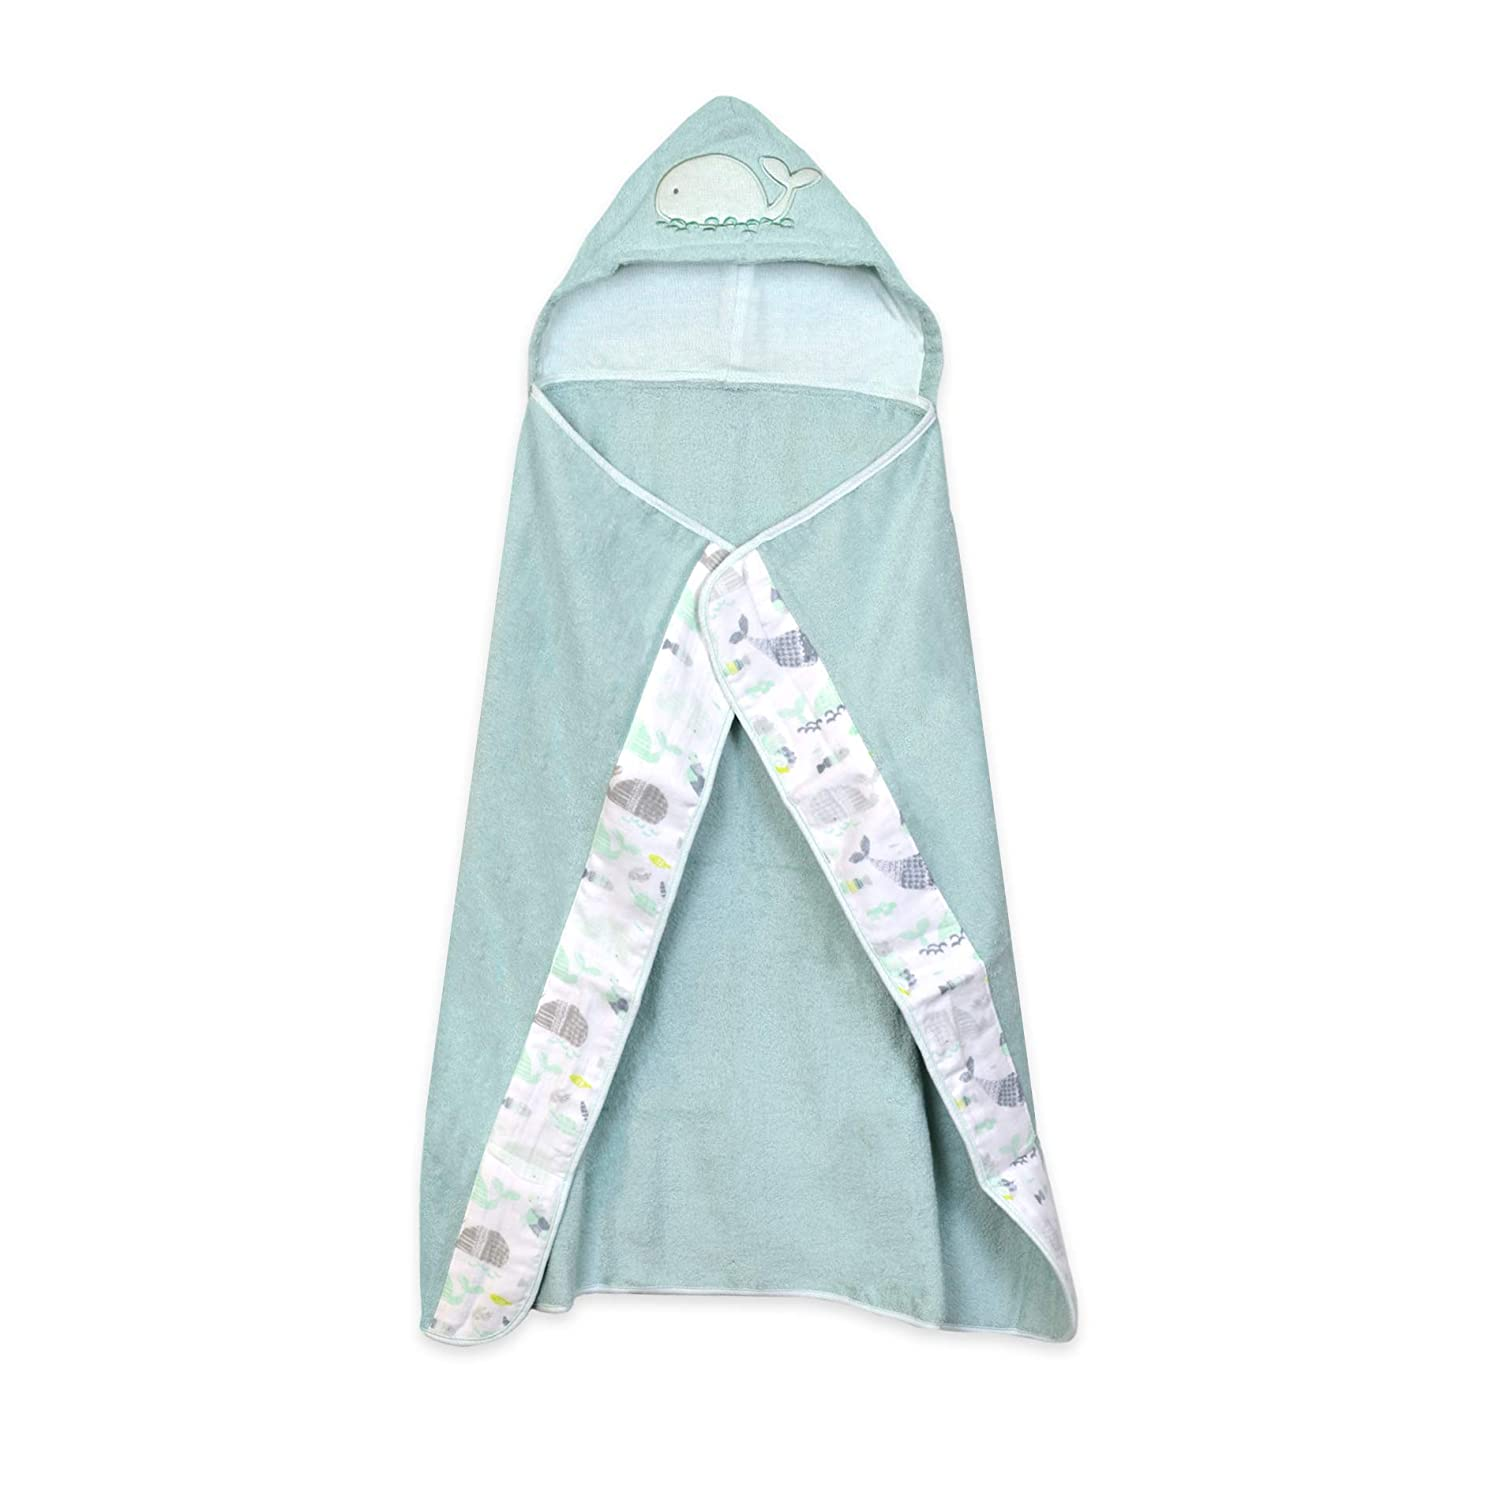 Max 52% OFF Just Born Boys and Girls Max 62% OFF Newborn Bath Toddler Baby Infant Hooded